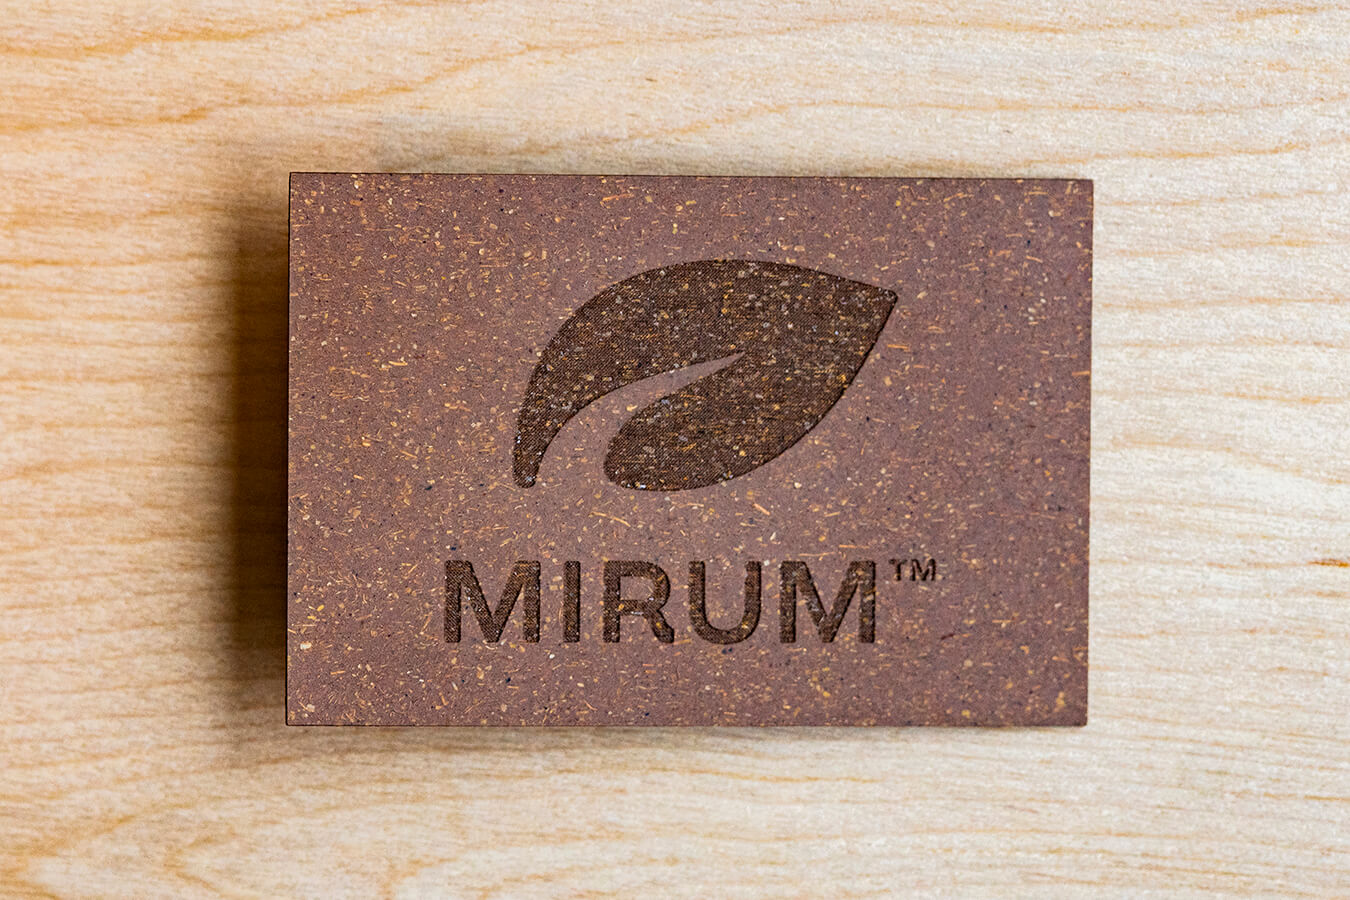 A MIRUM patch on a wooden surface. The patch displays the MIRUM logo.